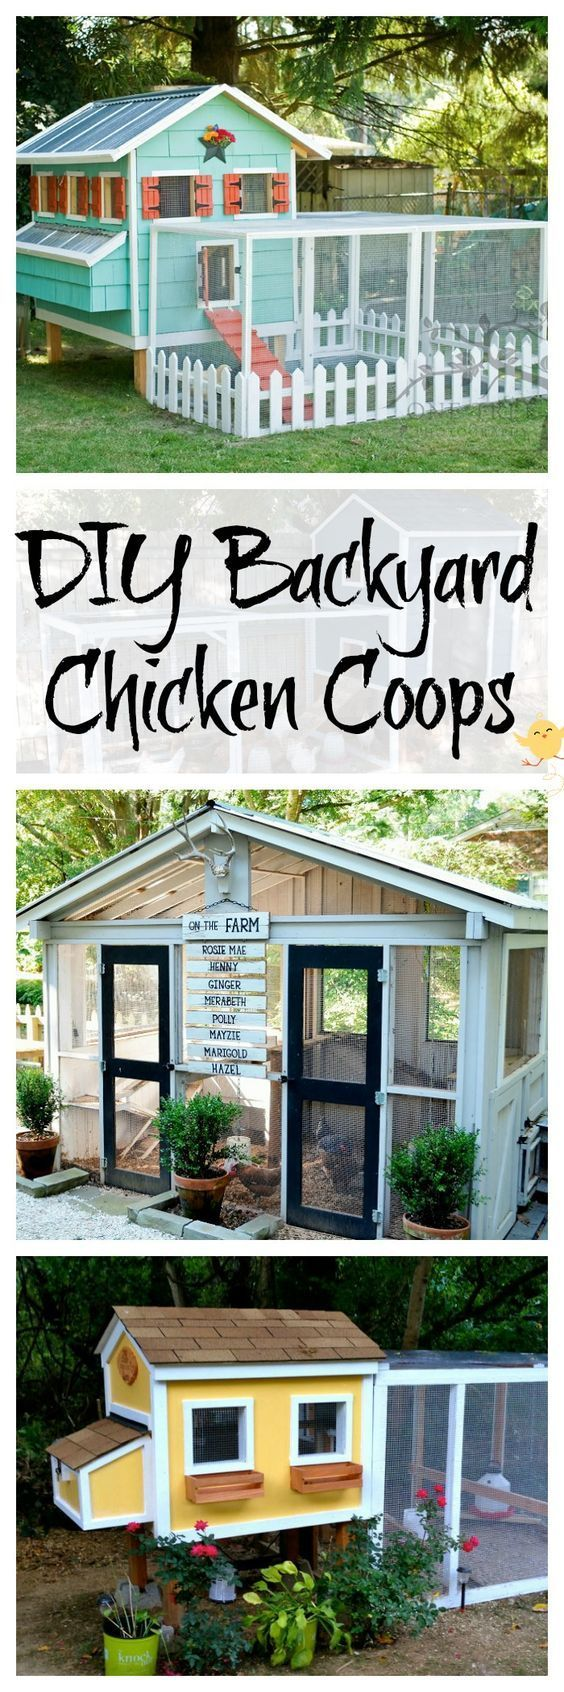 how to build a chicken coop in 4 easy steps 2nd edition cheap